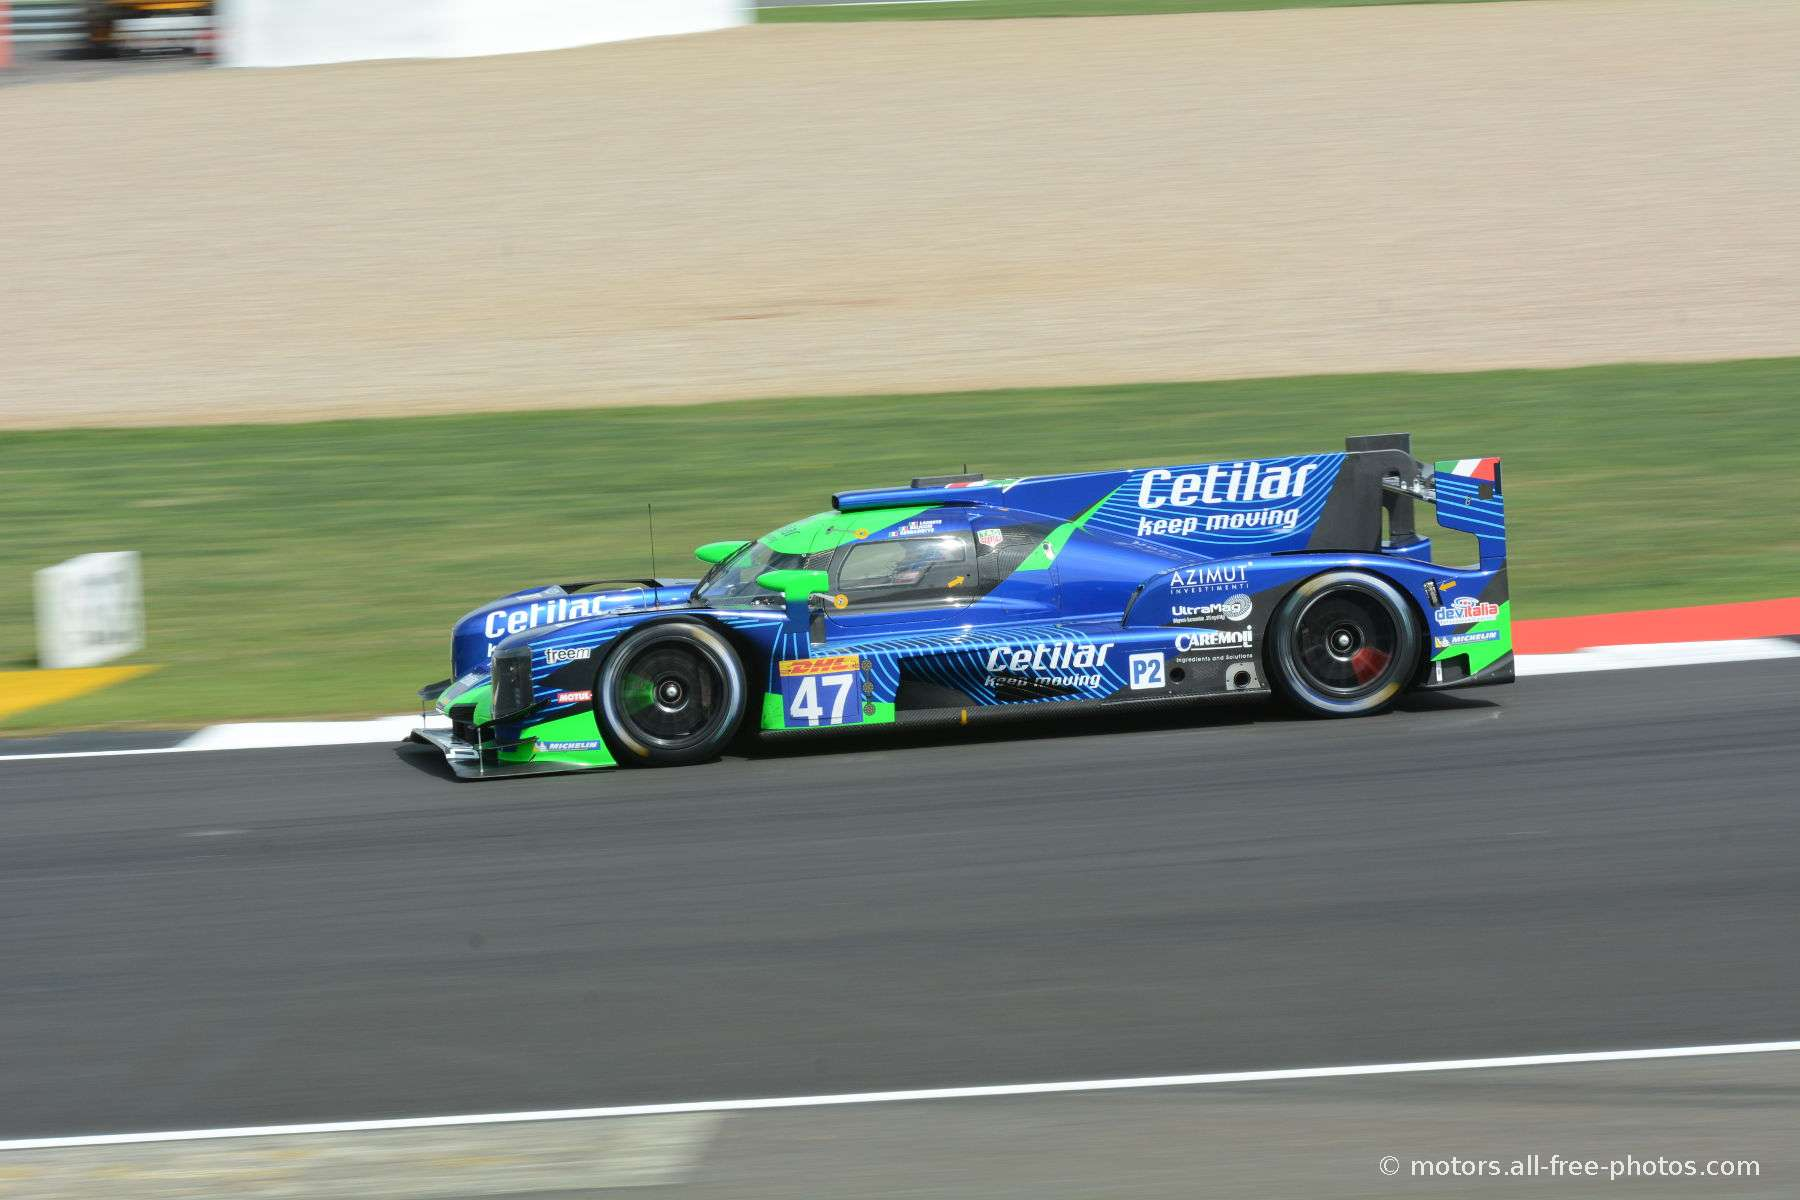 Dallara P217-Gibson - Team Cetilar Racing